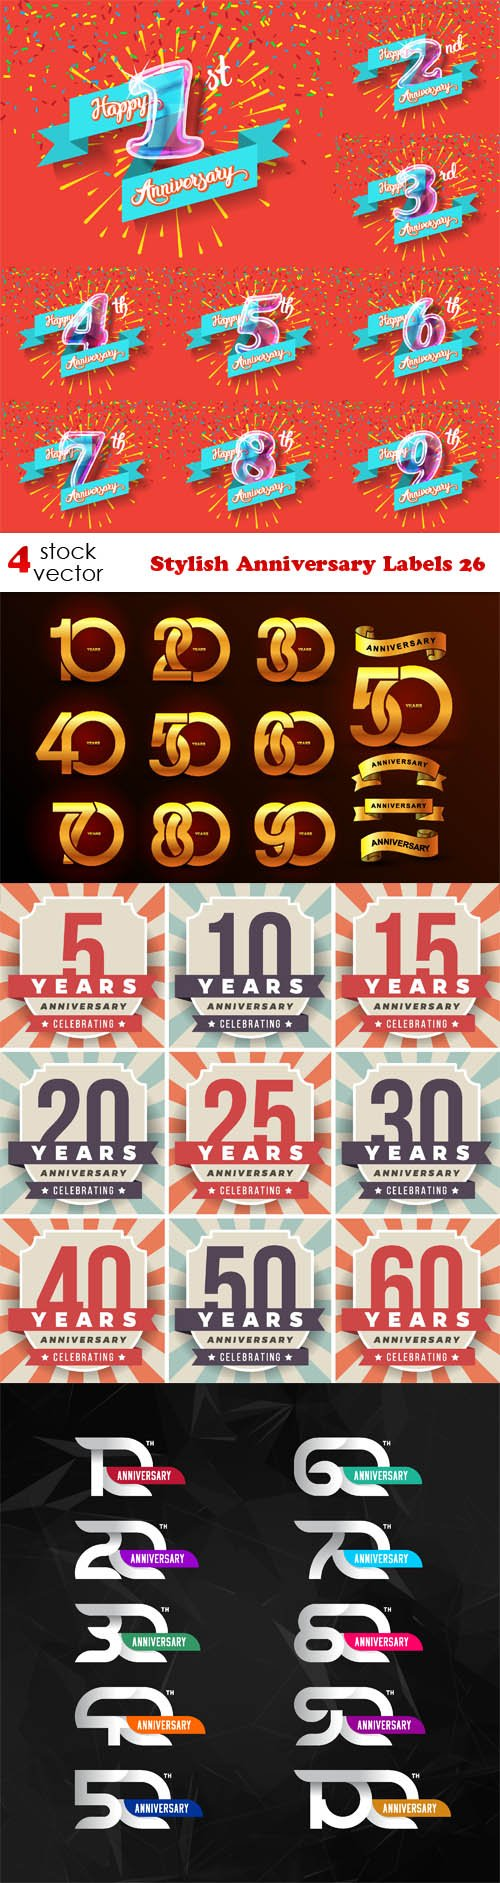 Vectors - Stylish Anniversary Labels 26